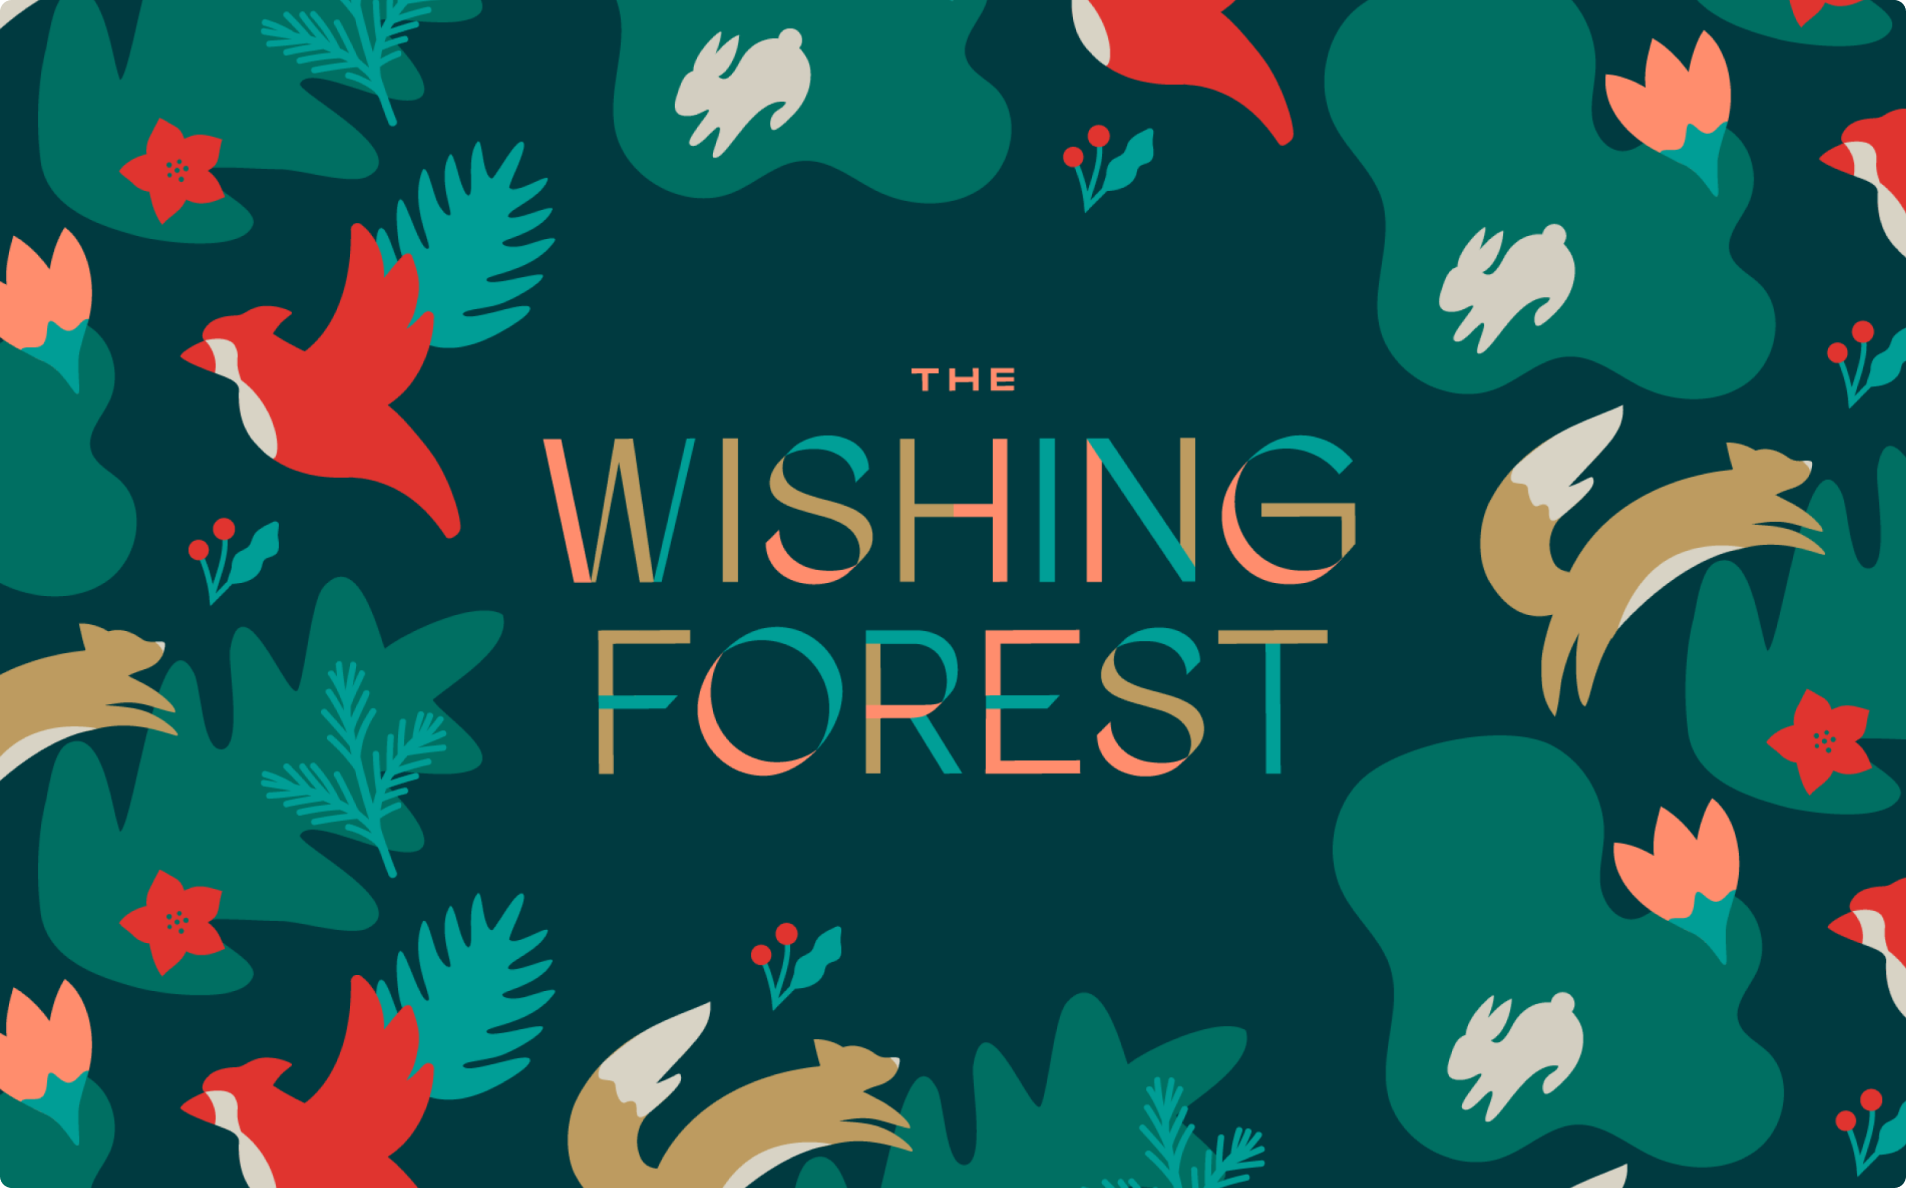 The Wishing Forest